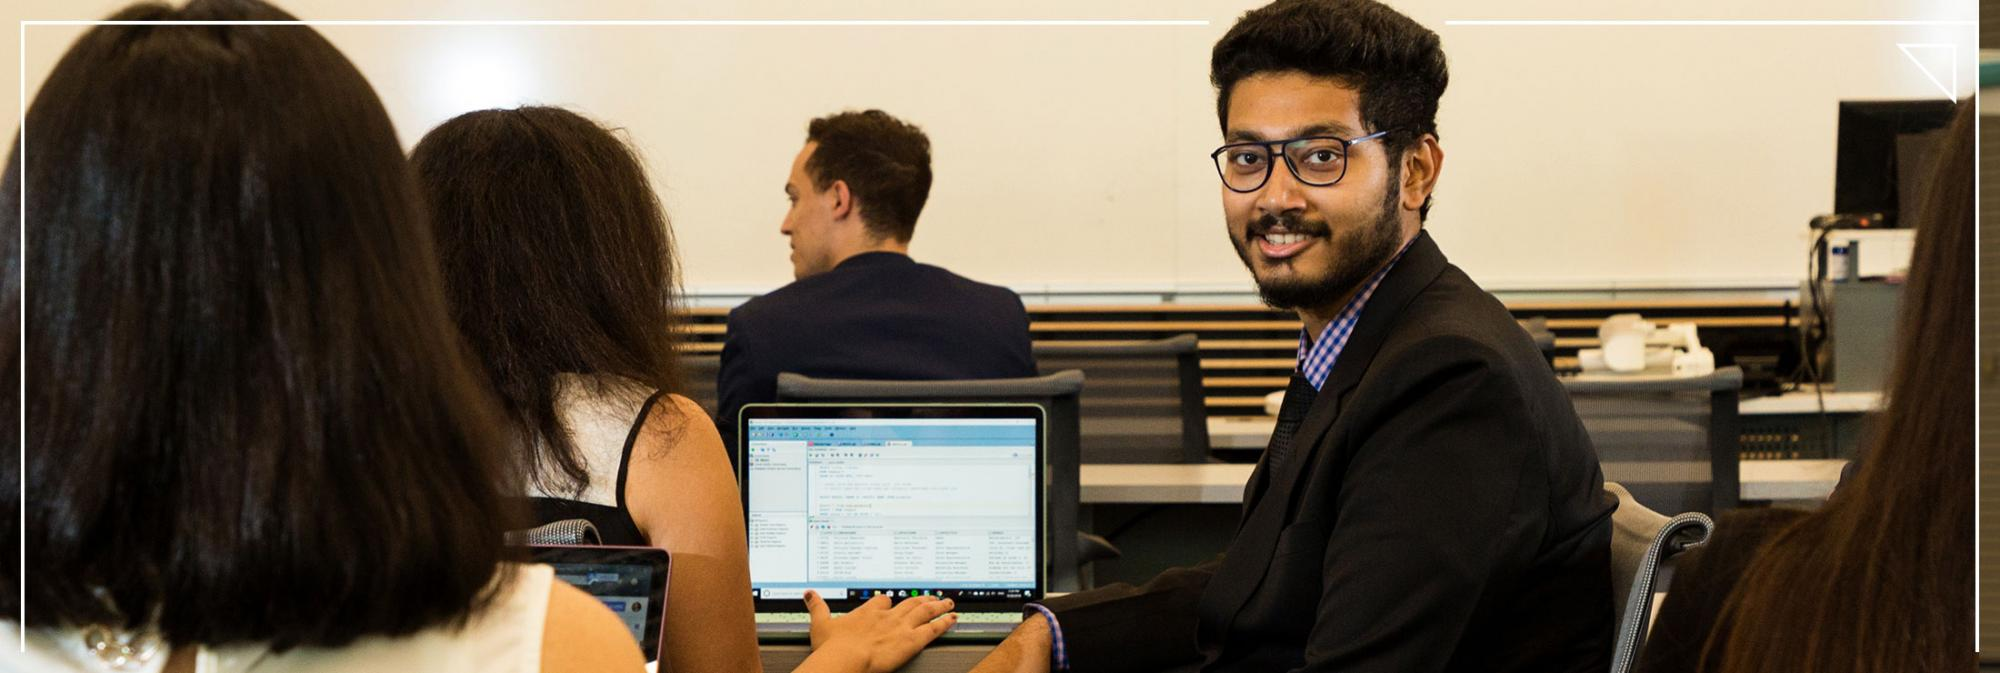 Management Information Systems Master's Programs